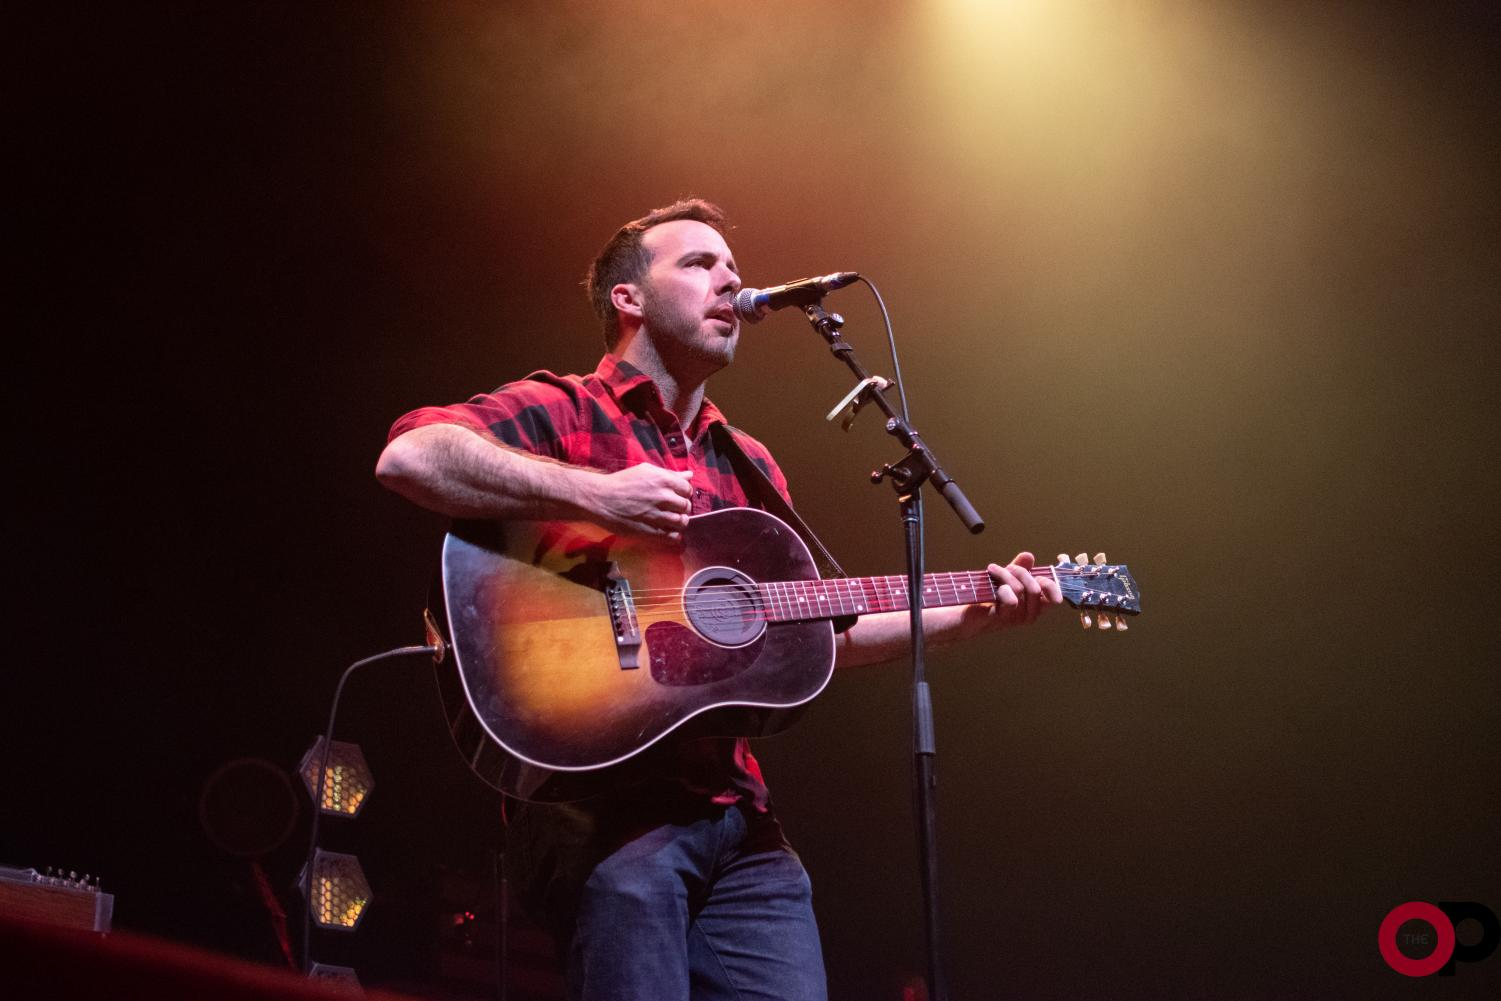 Ben Danaher performs at the Fillmore on Saturday, Nov 23.